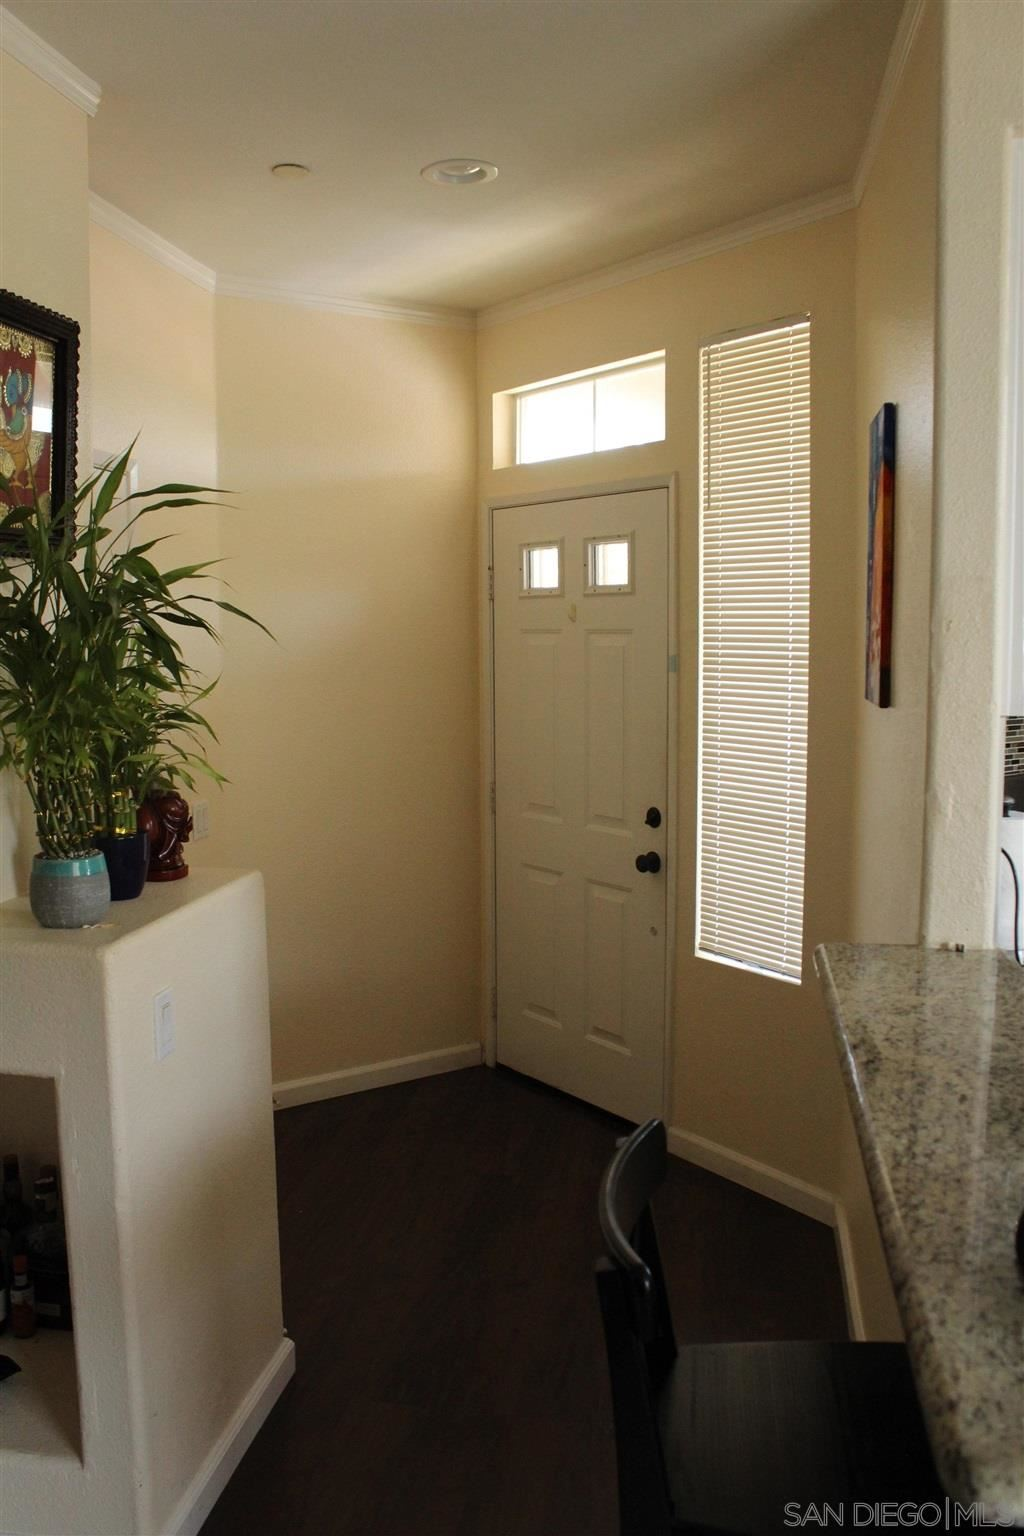 Photo of 10766 Sabre Hill Dr #253, San Diego, CA 92128 (MLS # 210021292)